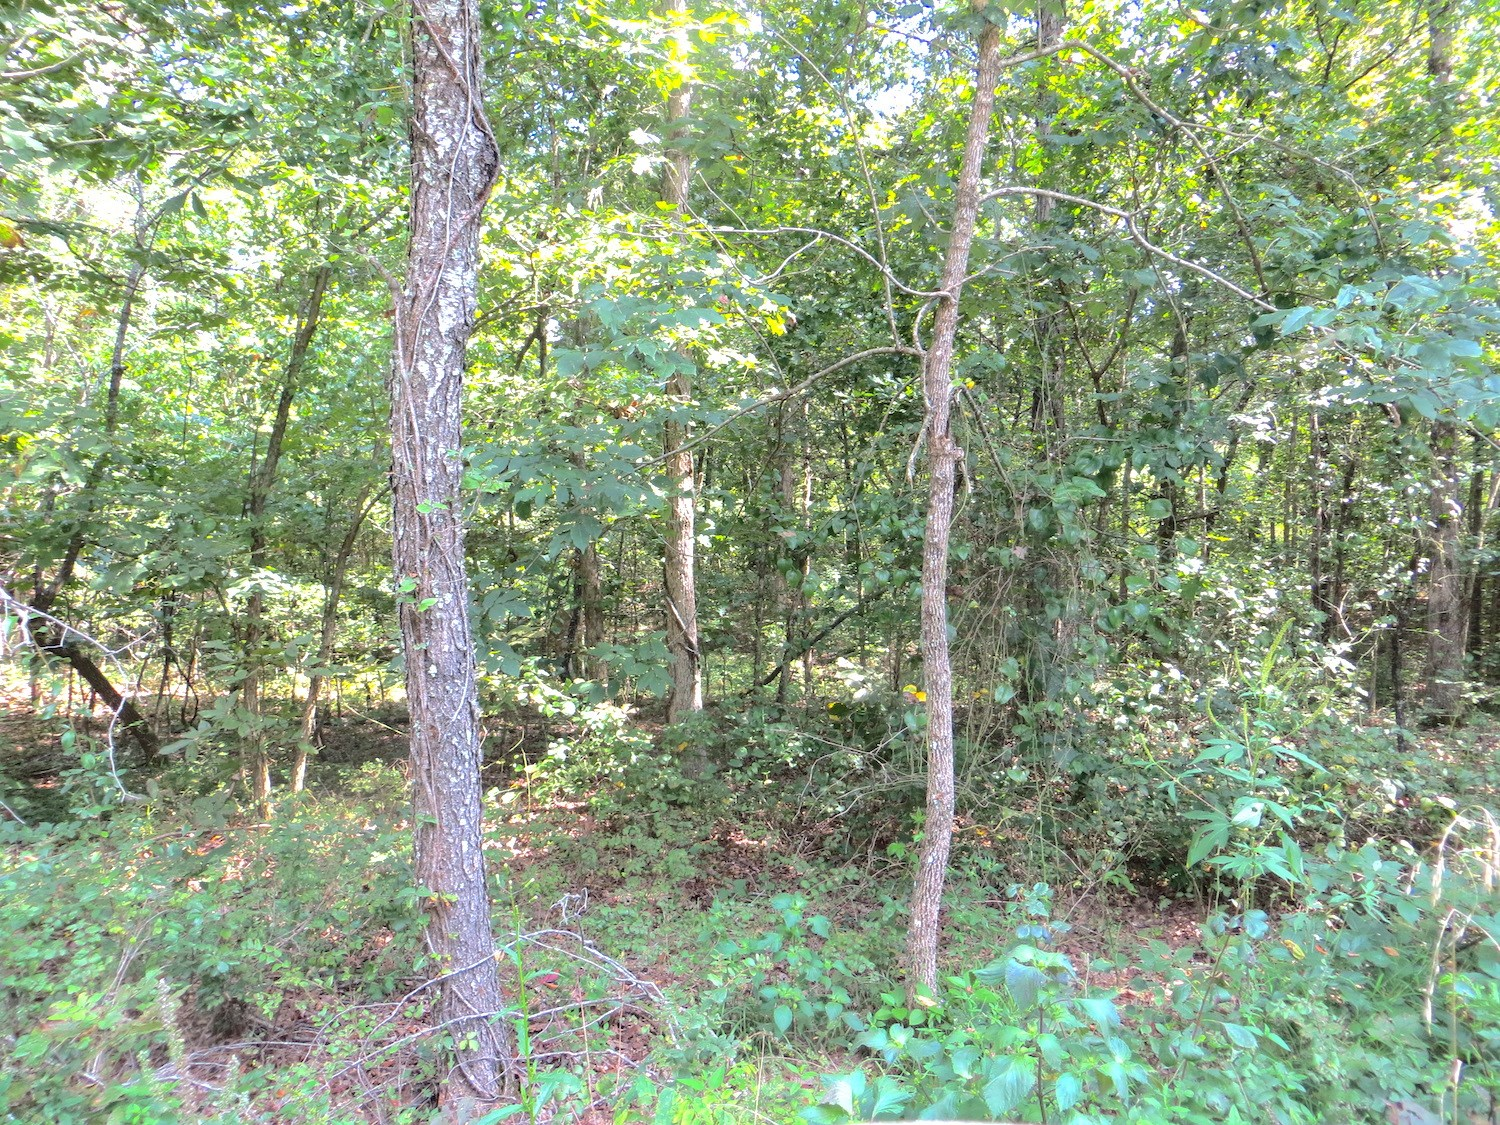 Land for Sale in Doniphan MO